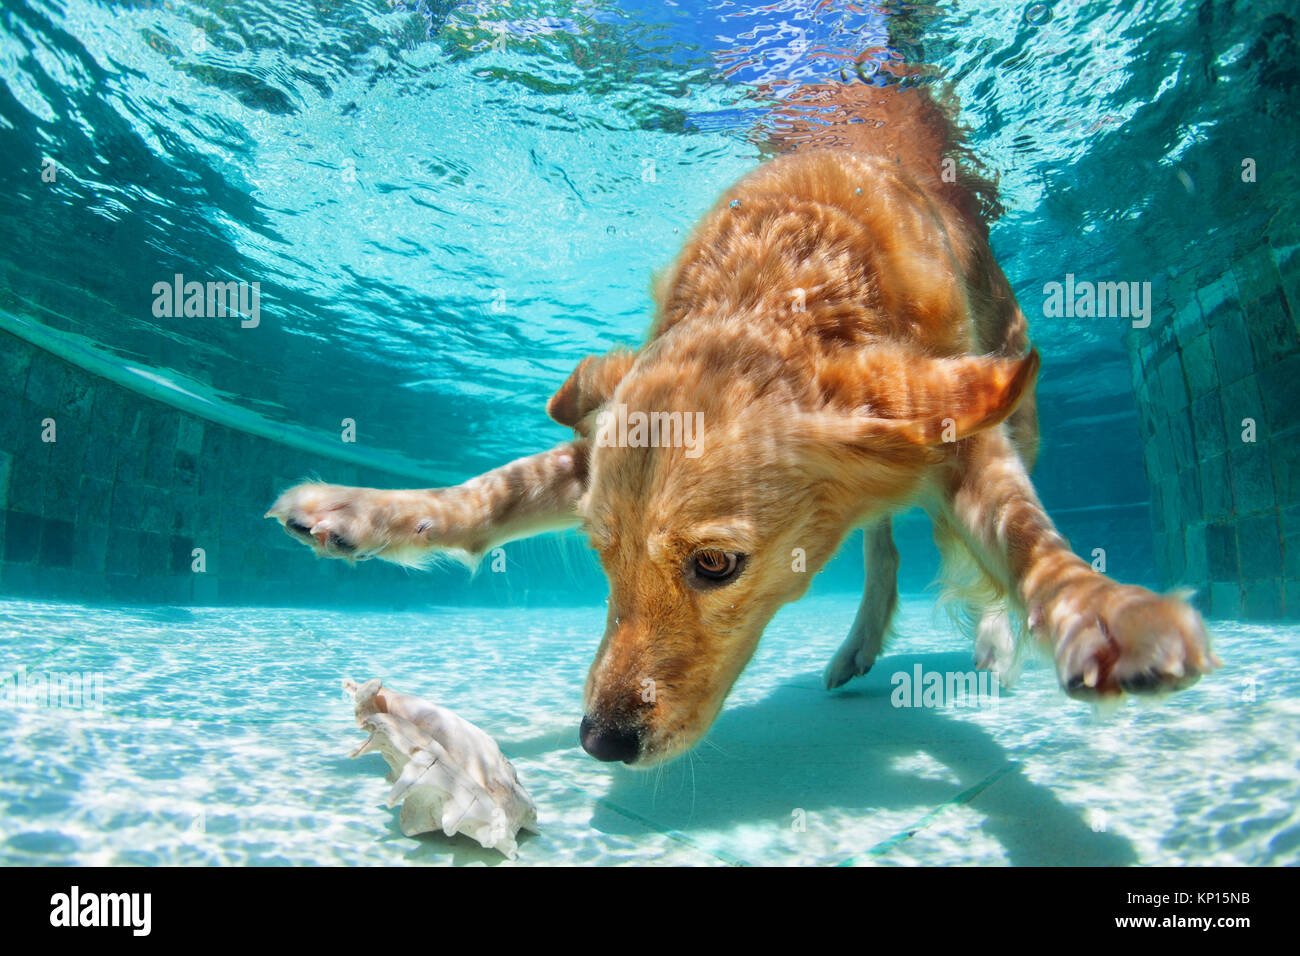 Golden labrador retriever puppy in swimming pool has fun. Dog jump, dive underwater to fetch ball. Dog training Stock Photo